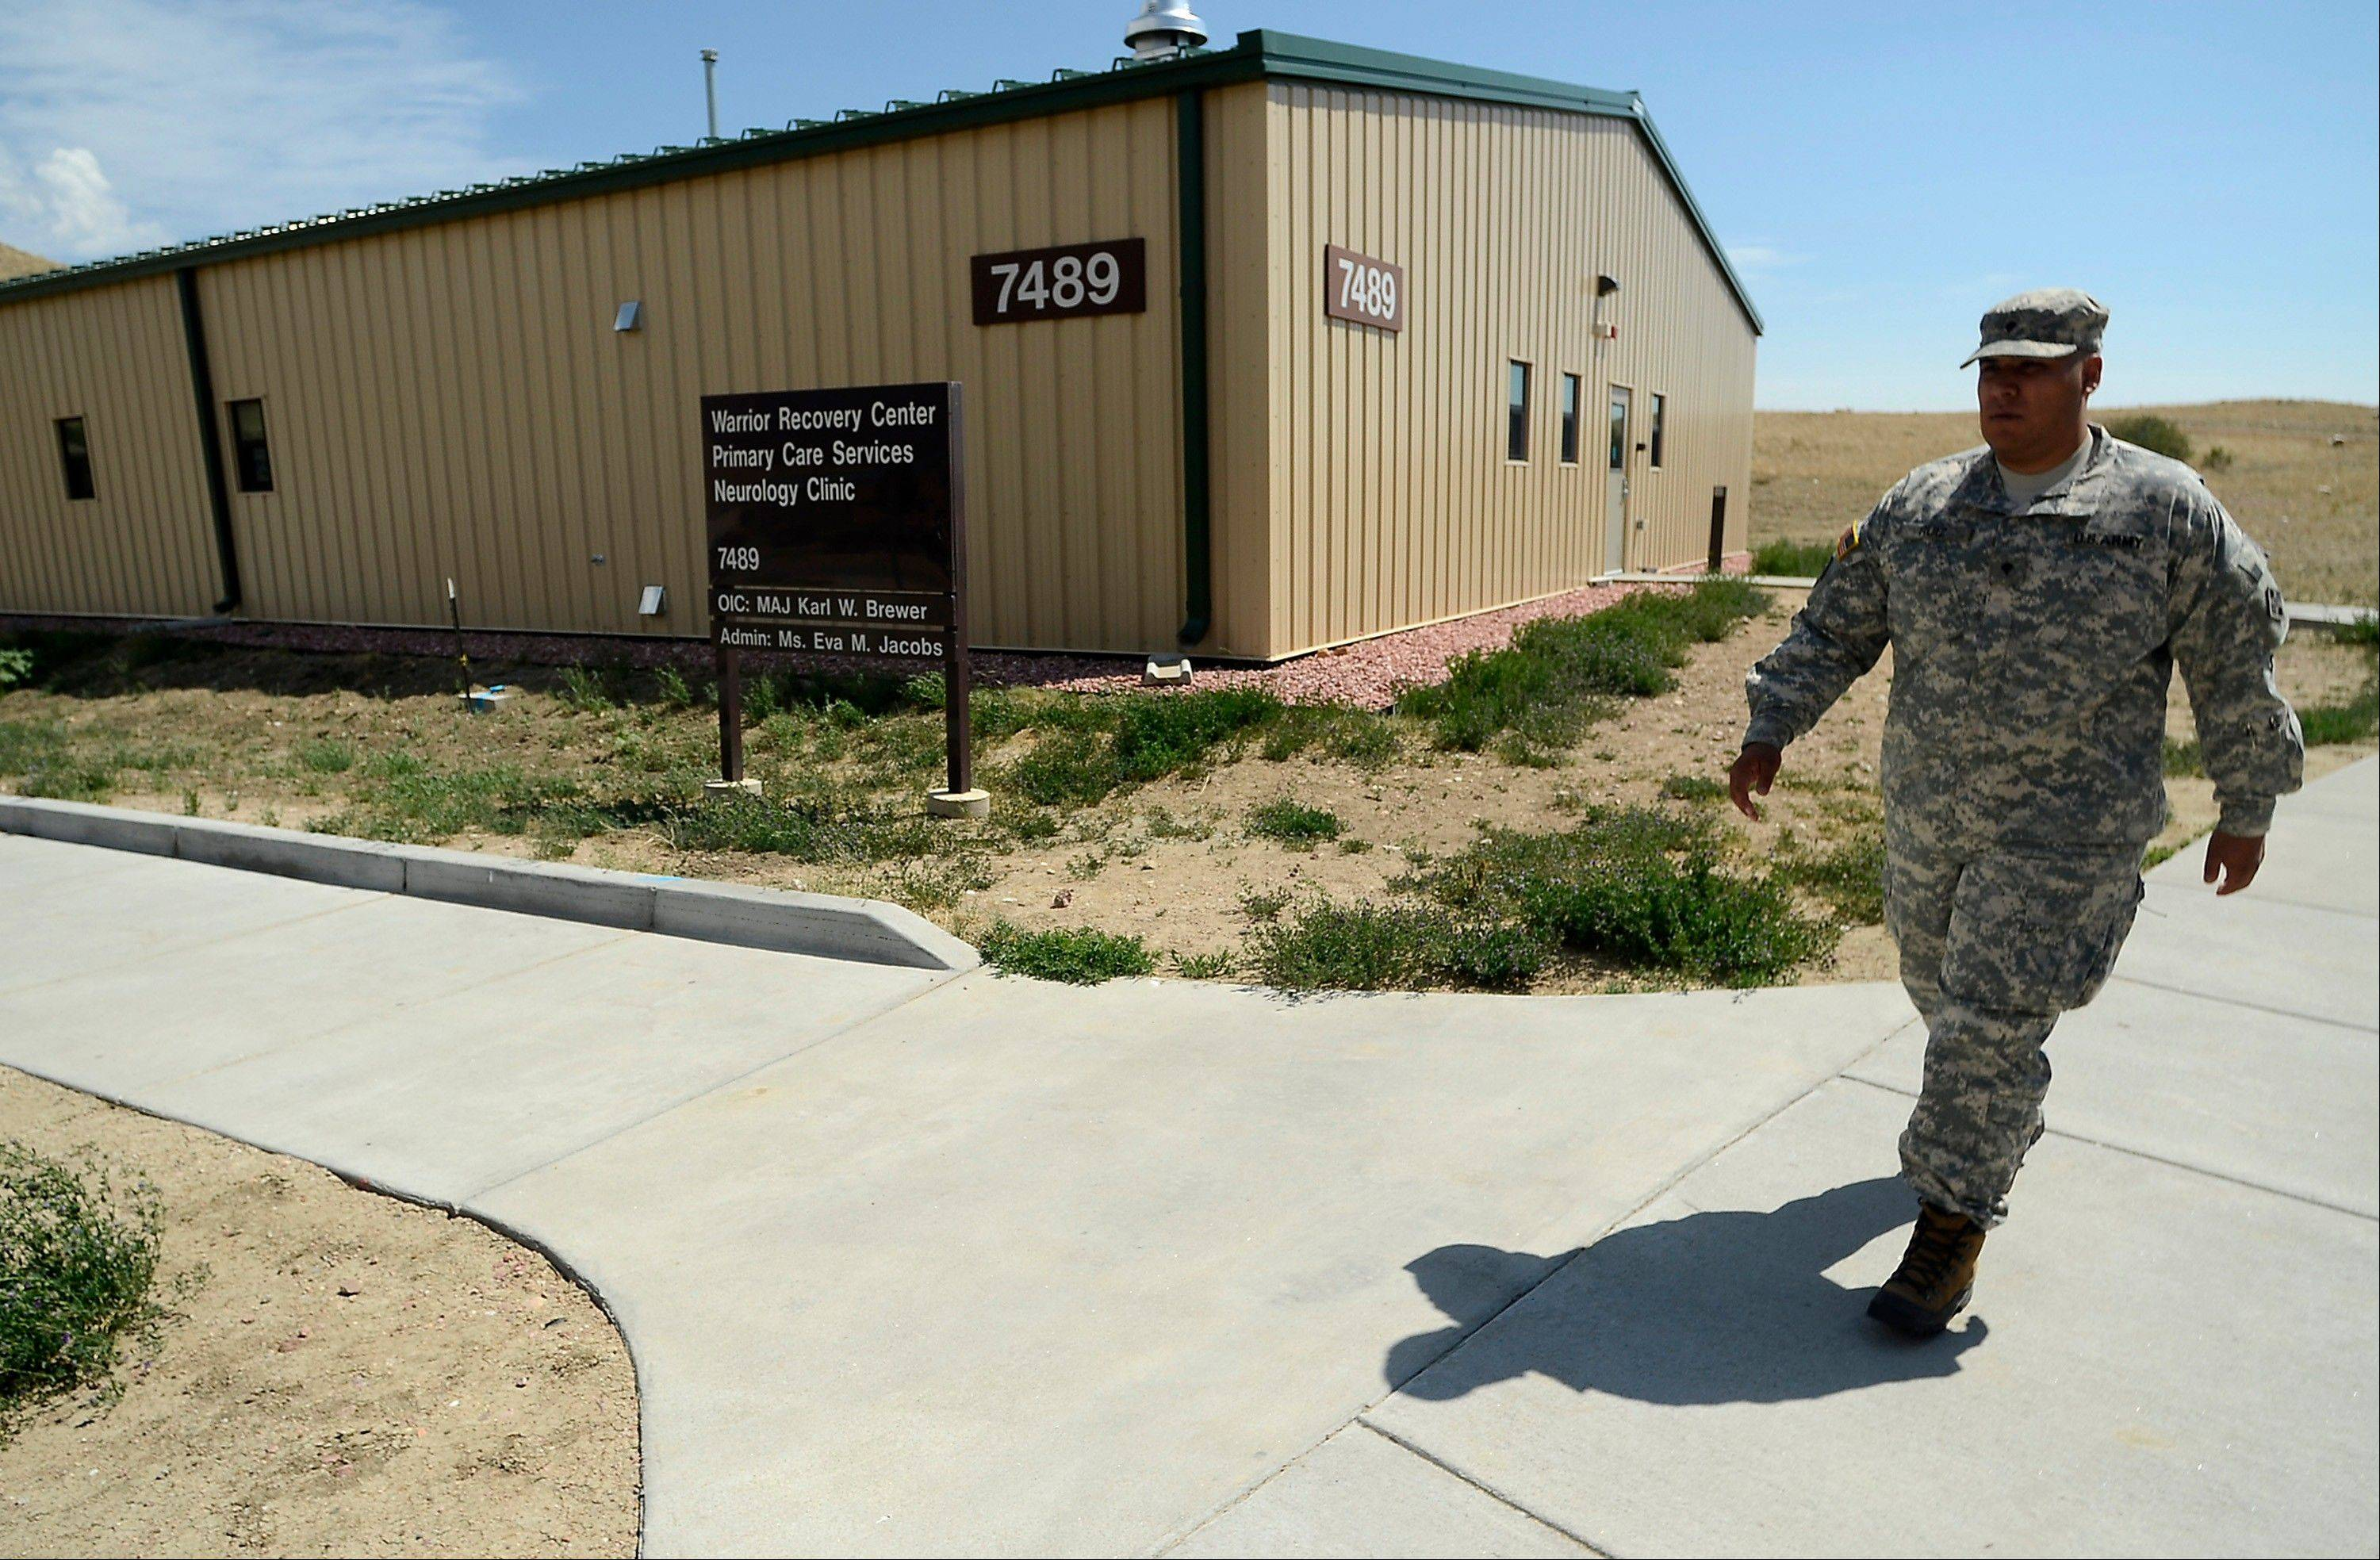 A soldier leaves the Warrior Recovery Center at Fort Carson, Colo.